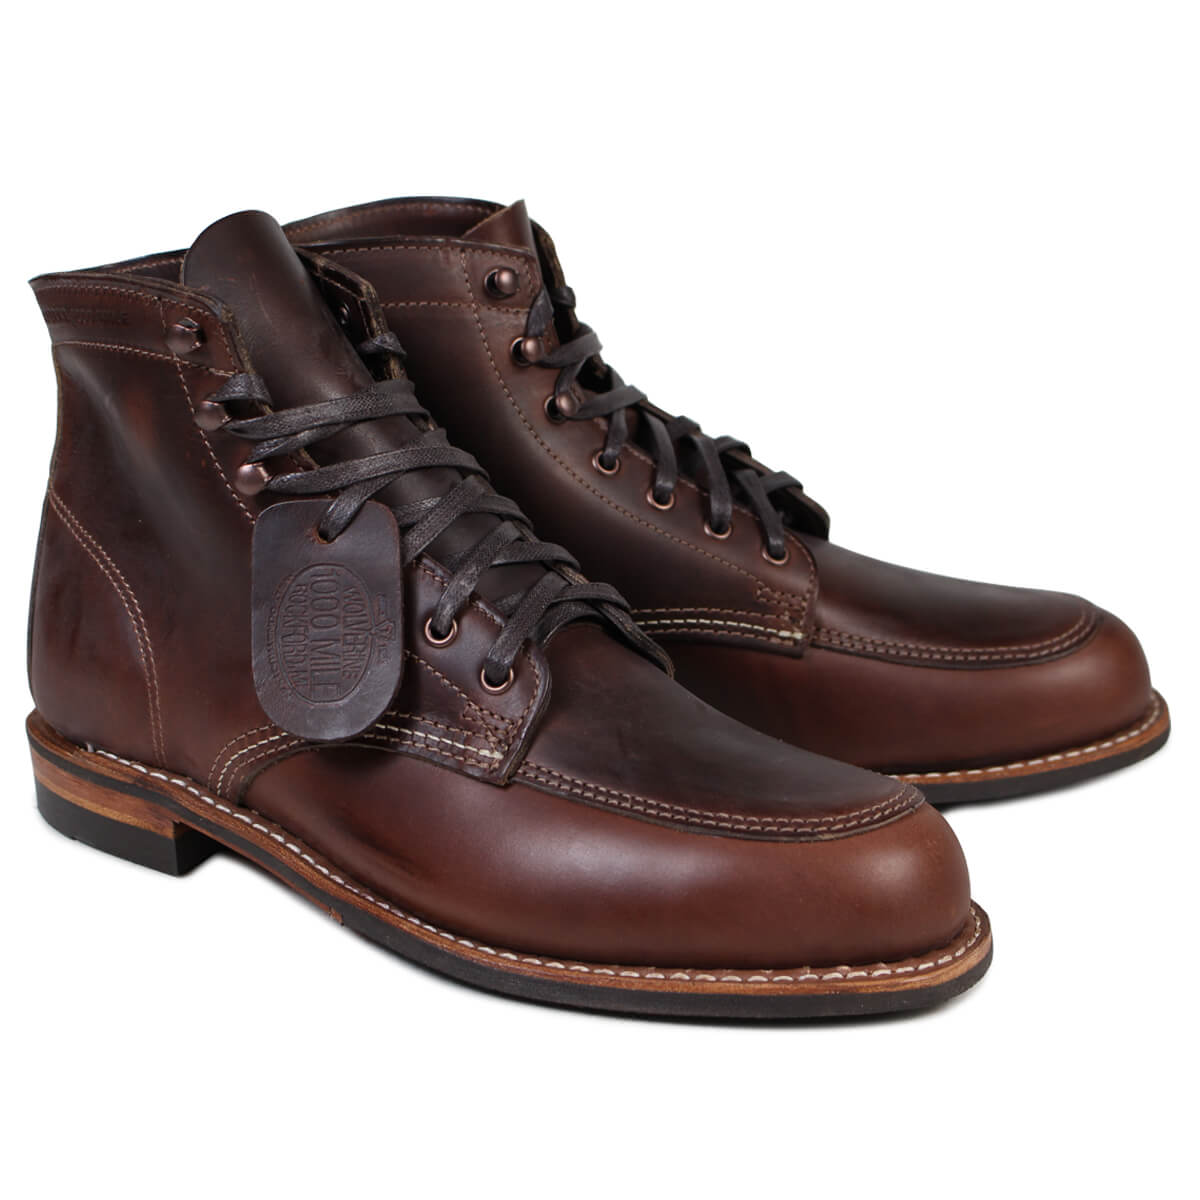 c07a1923dc4 WOLVERINE Wolverene 1,000 miles boots 1000MILE work boots COURTLAND BOOT D  Wise W00278 brown